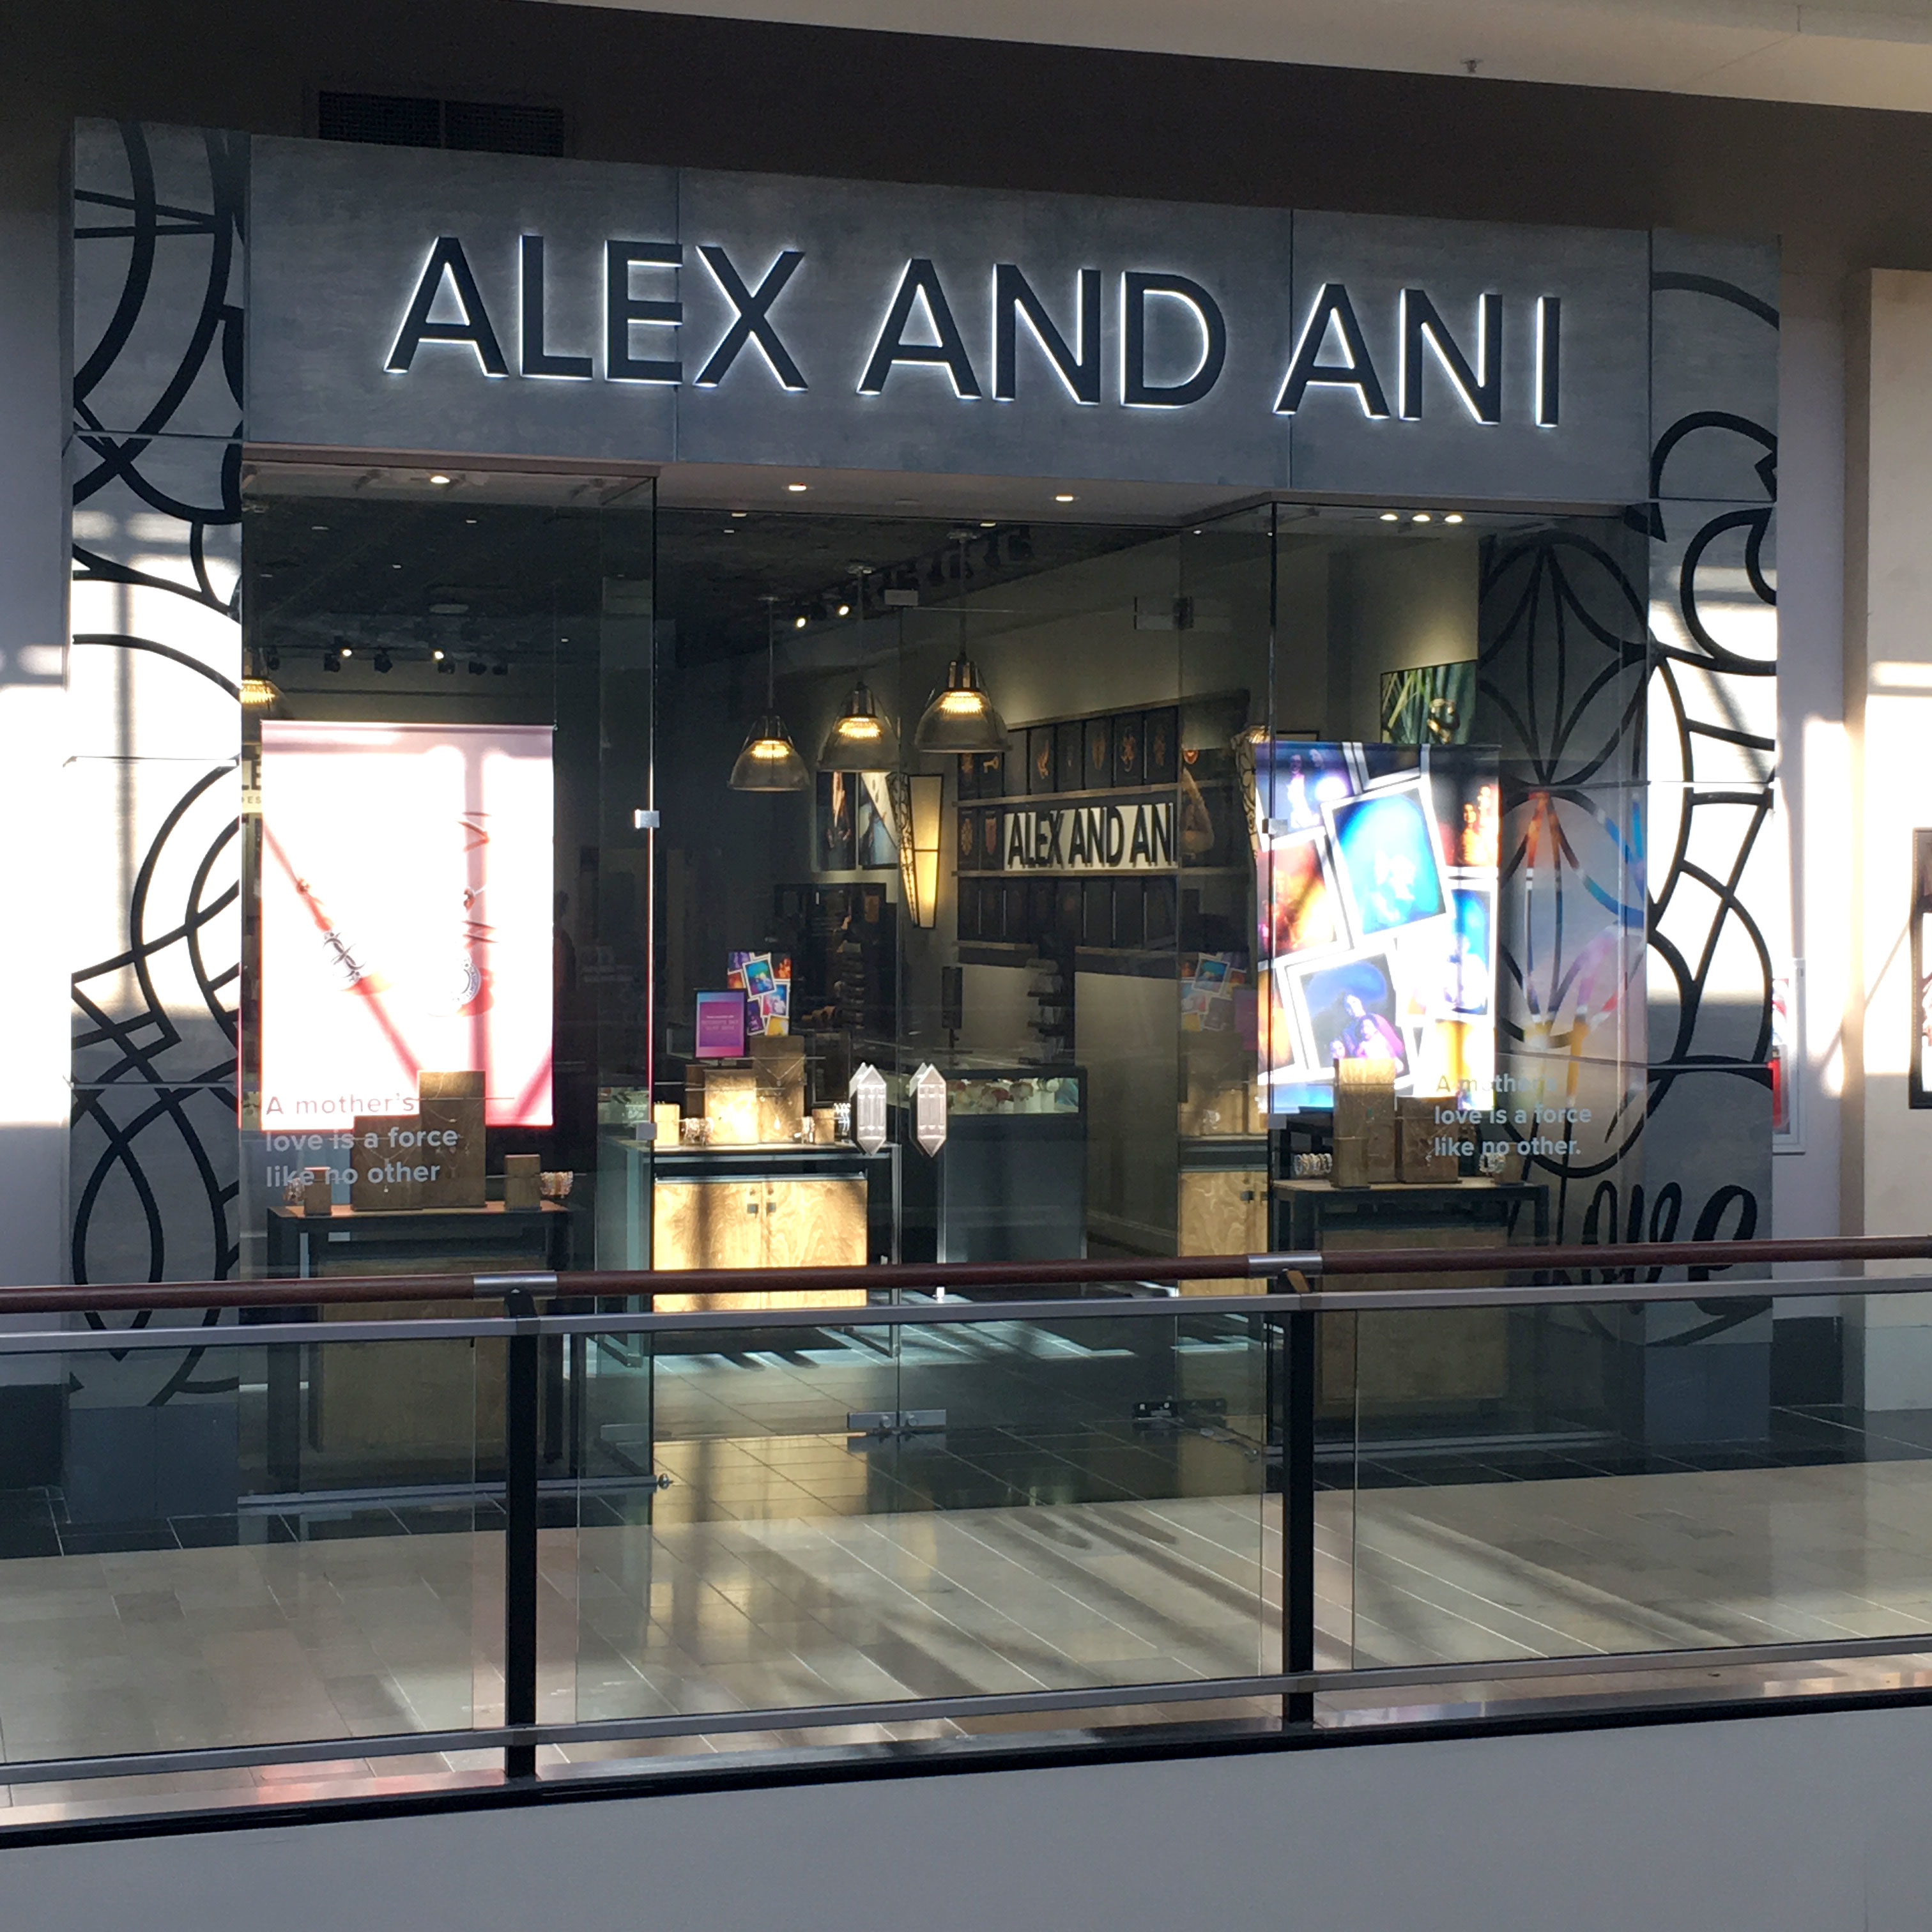 The skate host will work under the supervision of management at the Alex and Ani City Center. Skate hosts must have intermediate to expert ice skating ability.